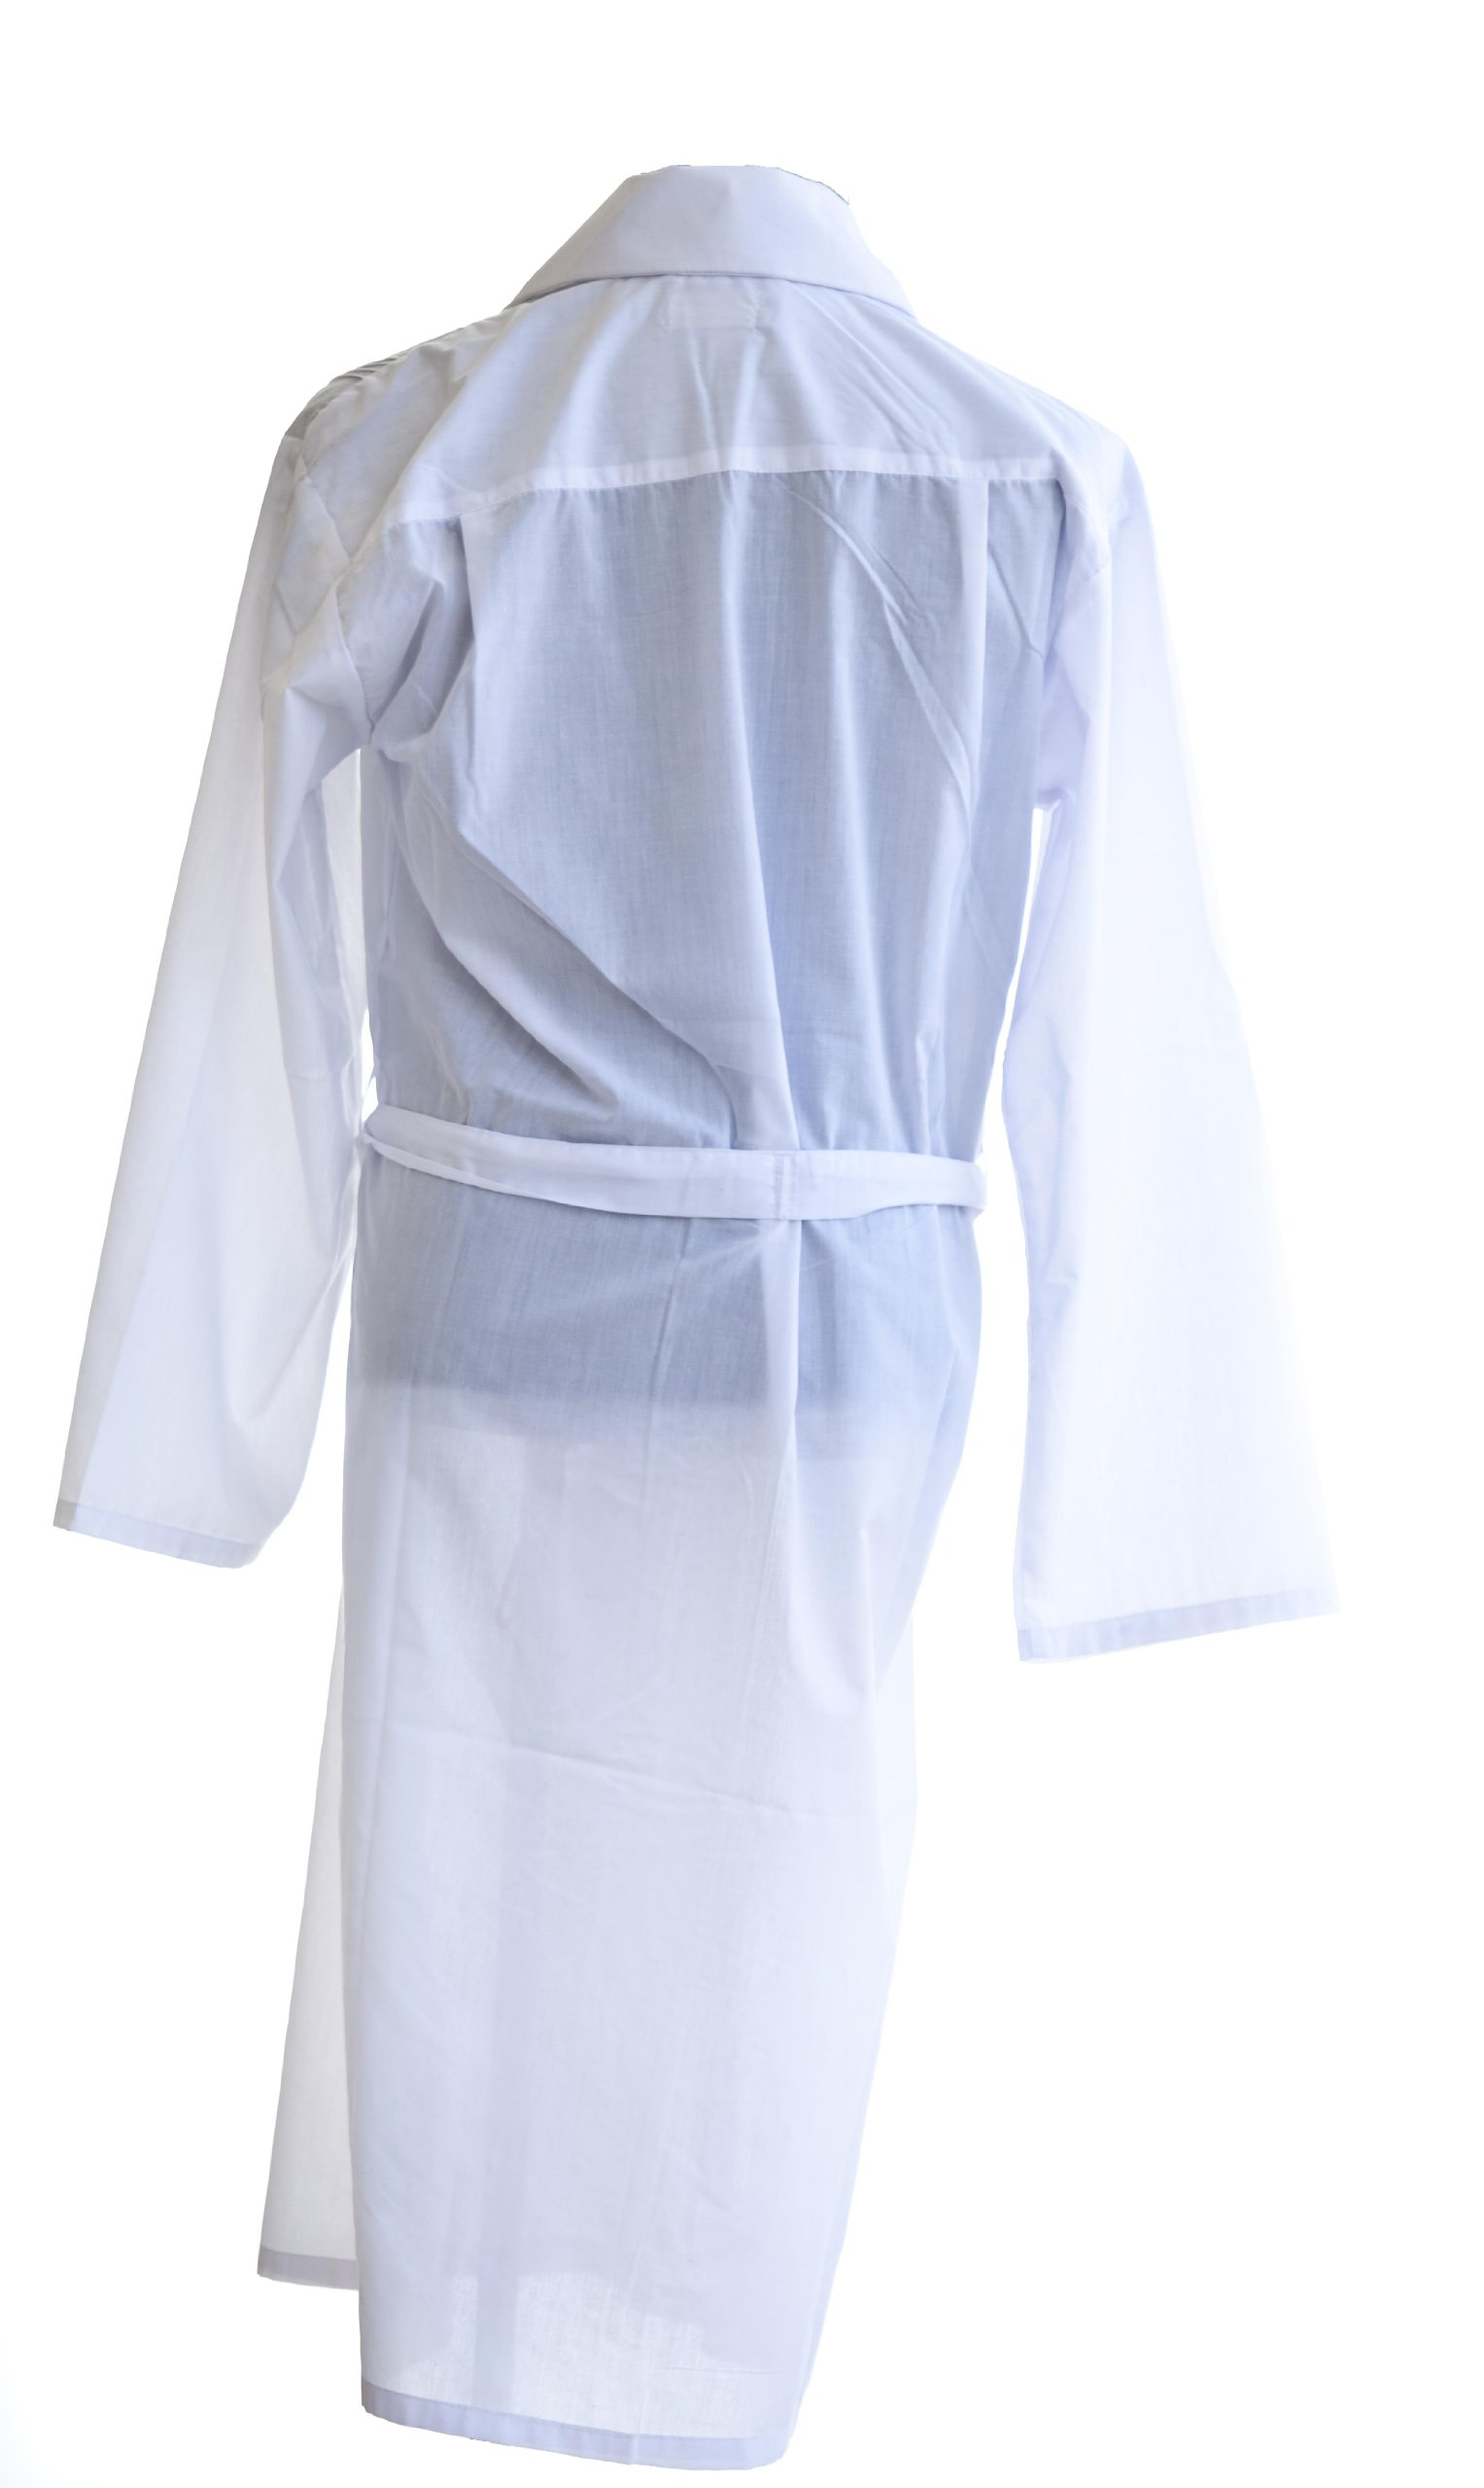 Top-Judaica Holiday White Kittel M Jewish Symobls Feast Gift Robe